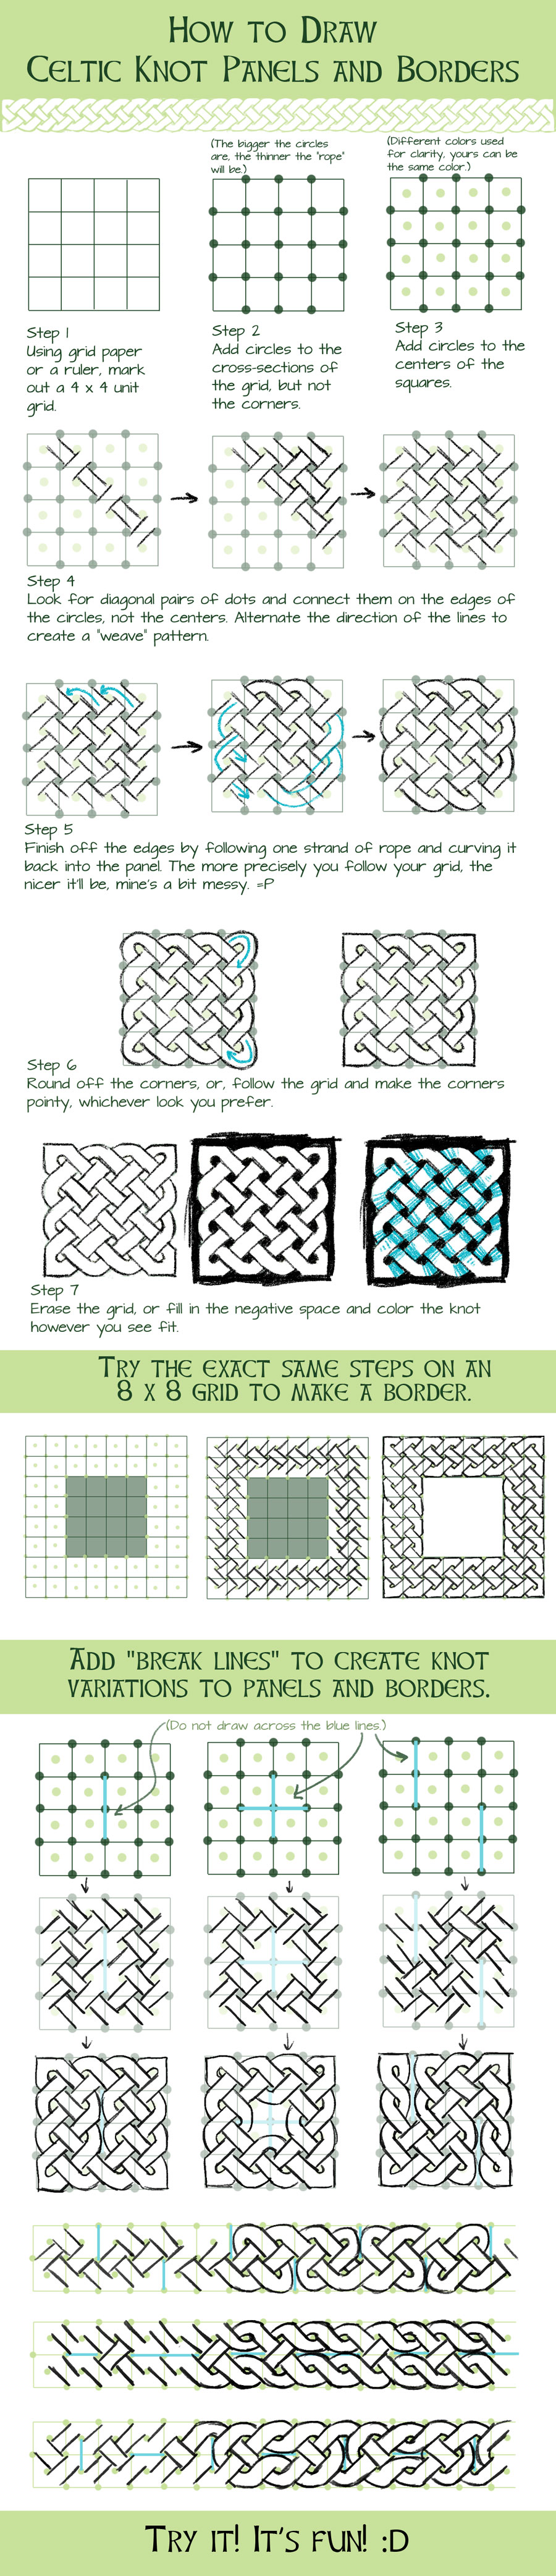 Betsyillustration How To Draw Basic Celtic Knots By Betsyillustration